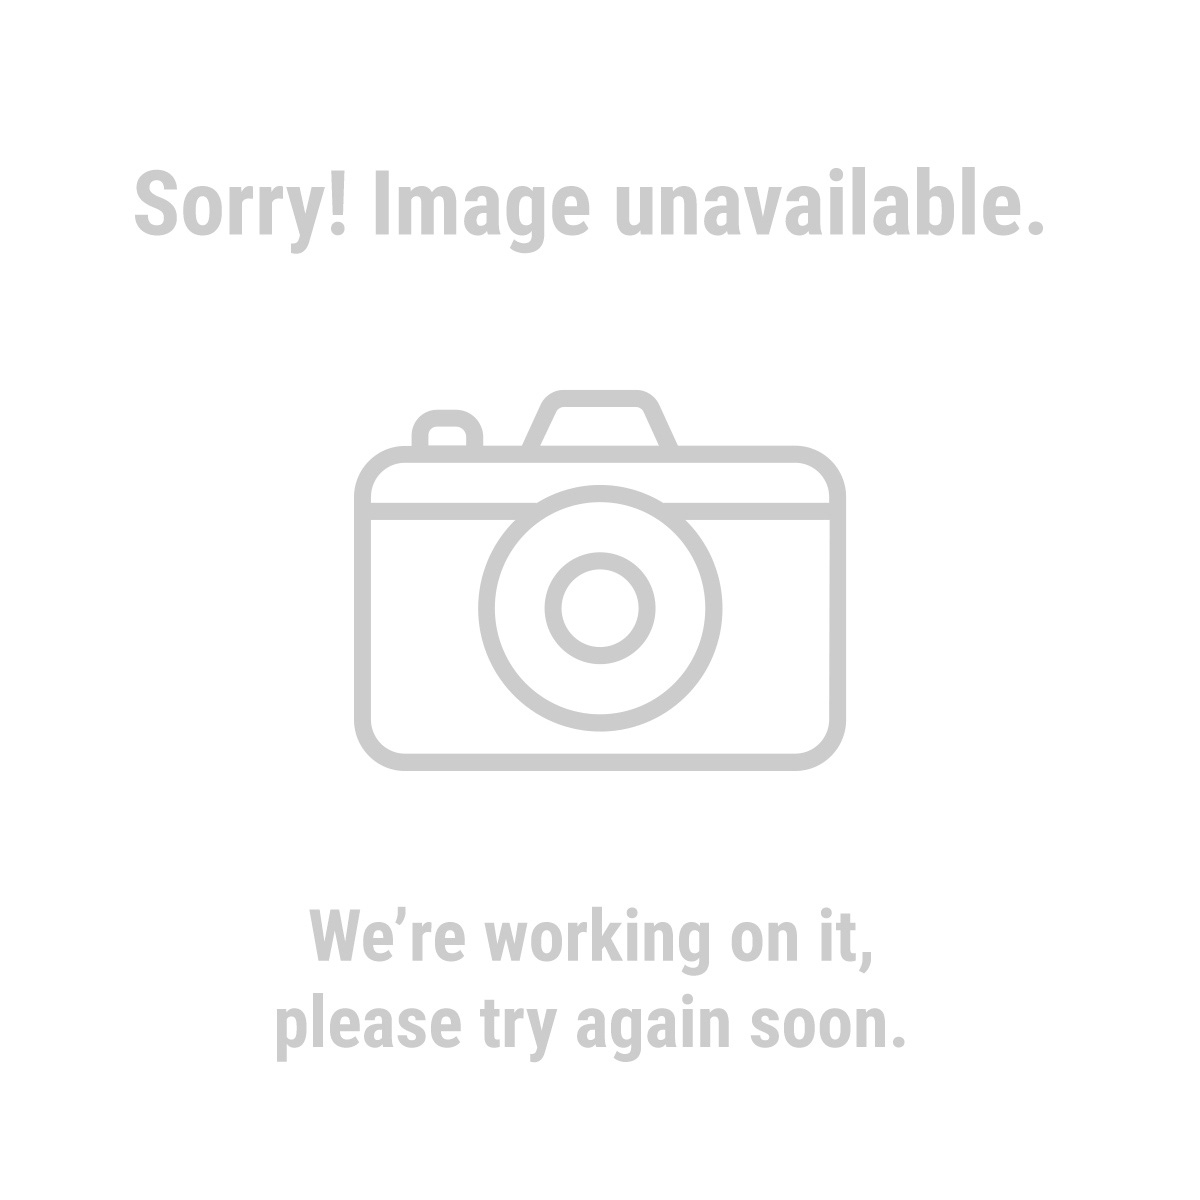 Pittsburgh 66534 Double Tube Flaring Tool Kit